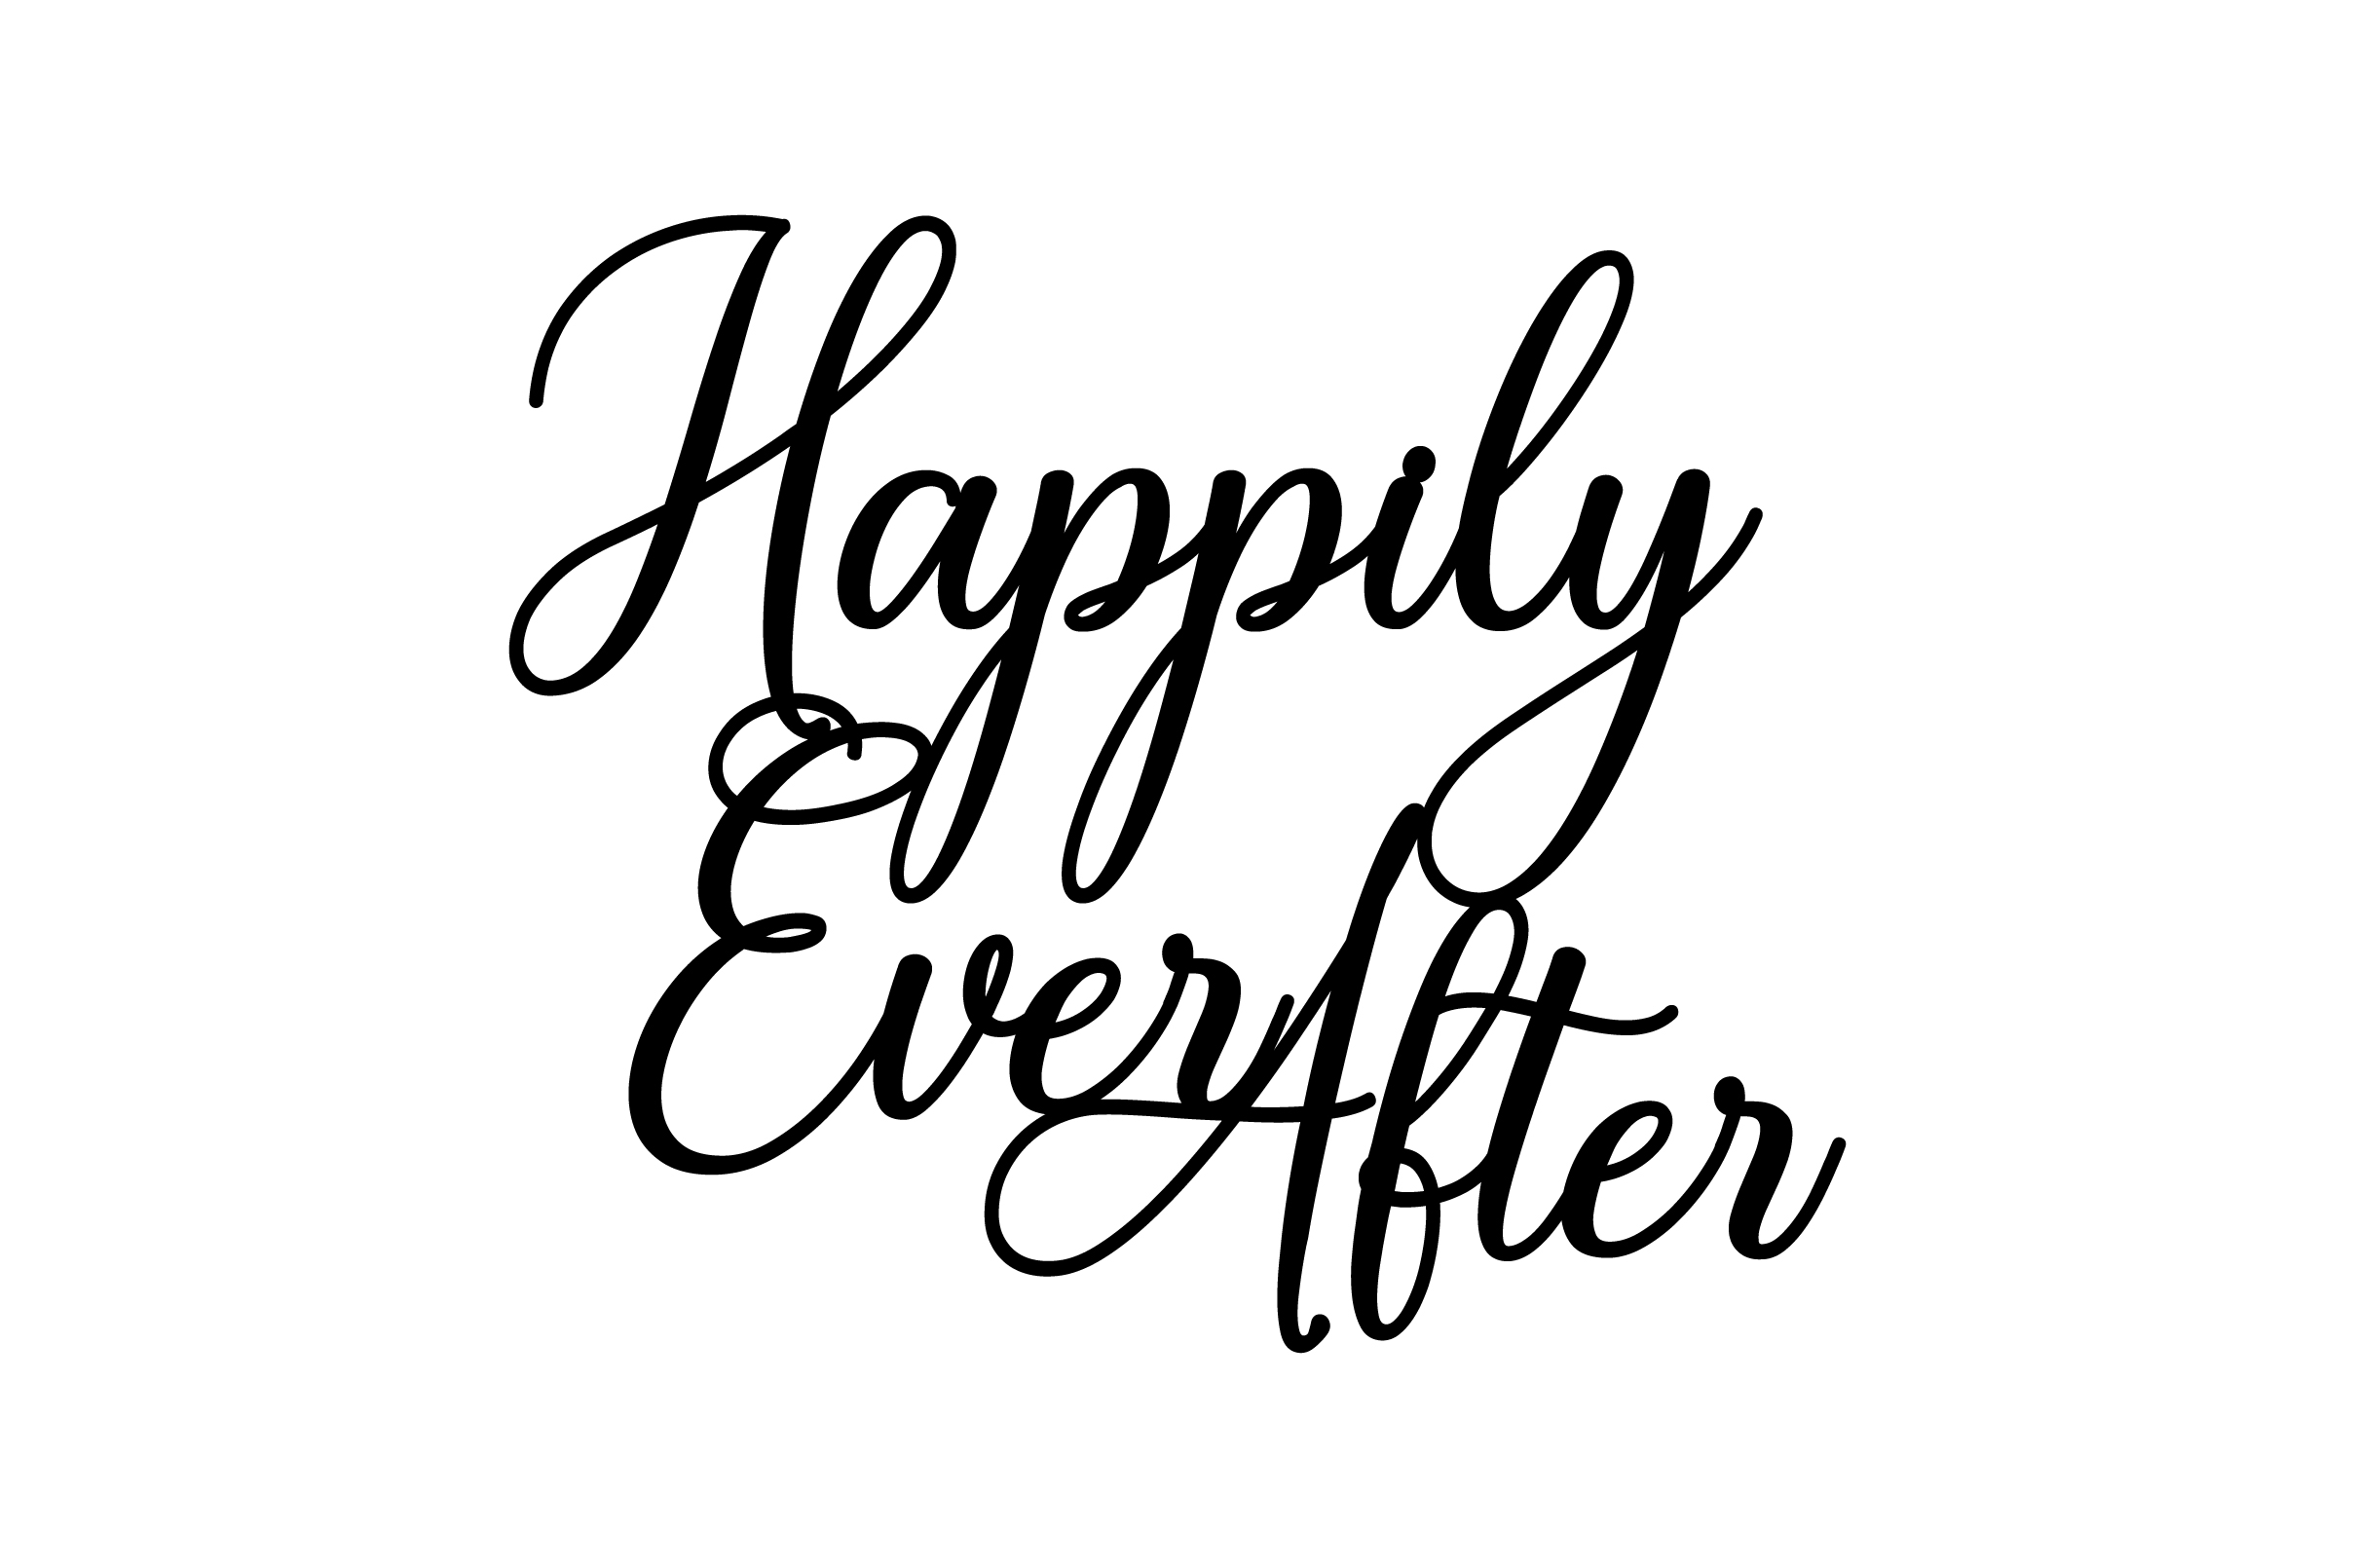 Download Free Happily Ever After Svg Cut File By Creative Fabrica Crafts for Cricut Explore, Silhouette and other cutting machines.